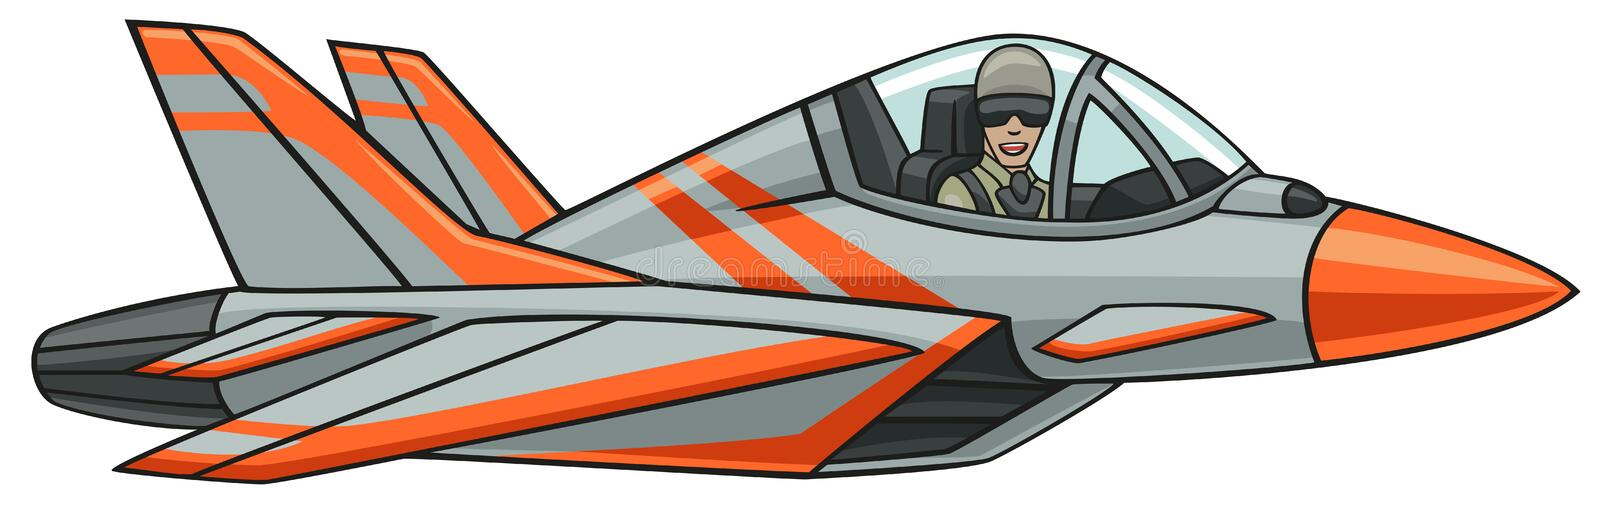 Supersonic aircraft. royalty free illustration